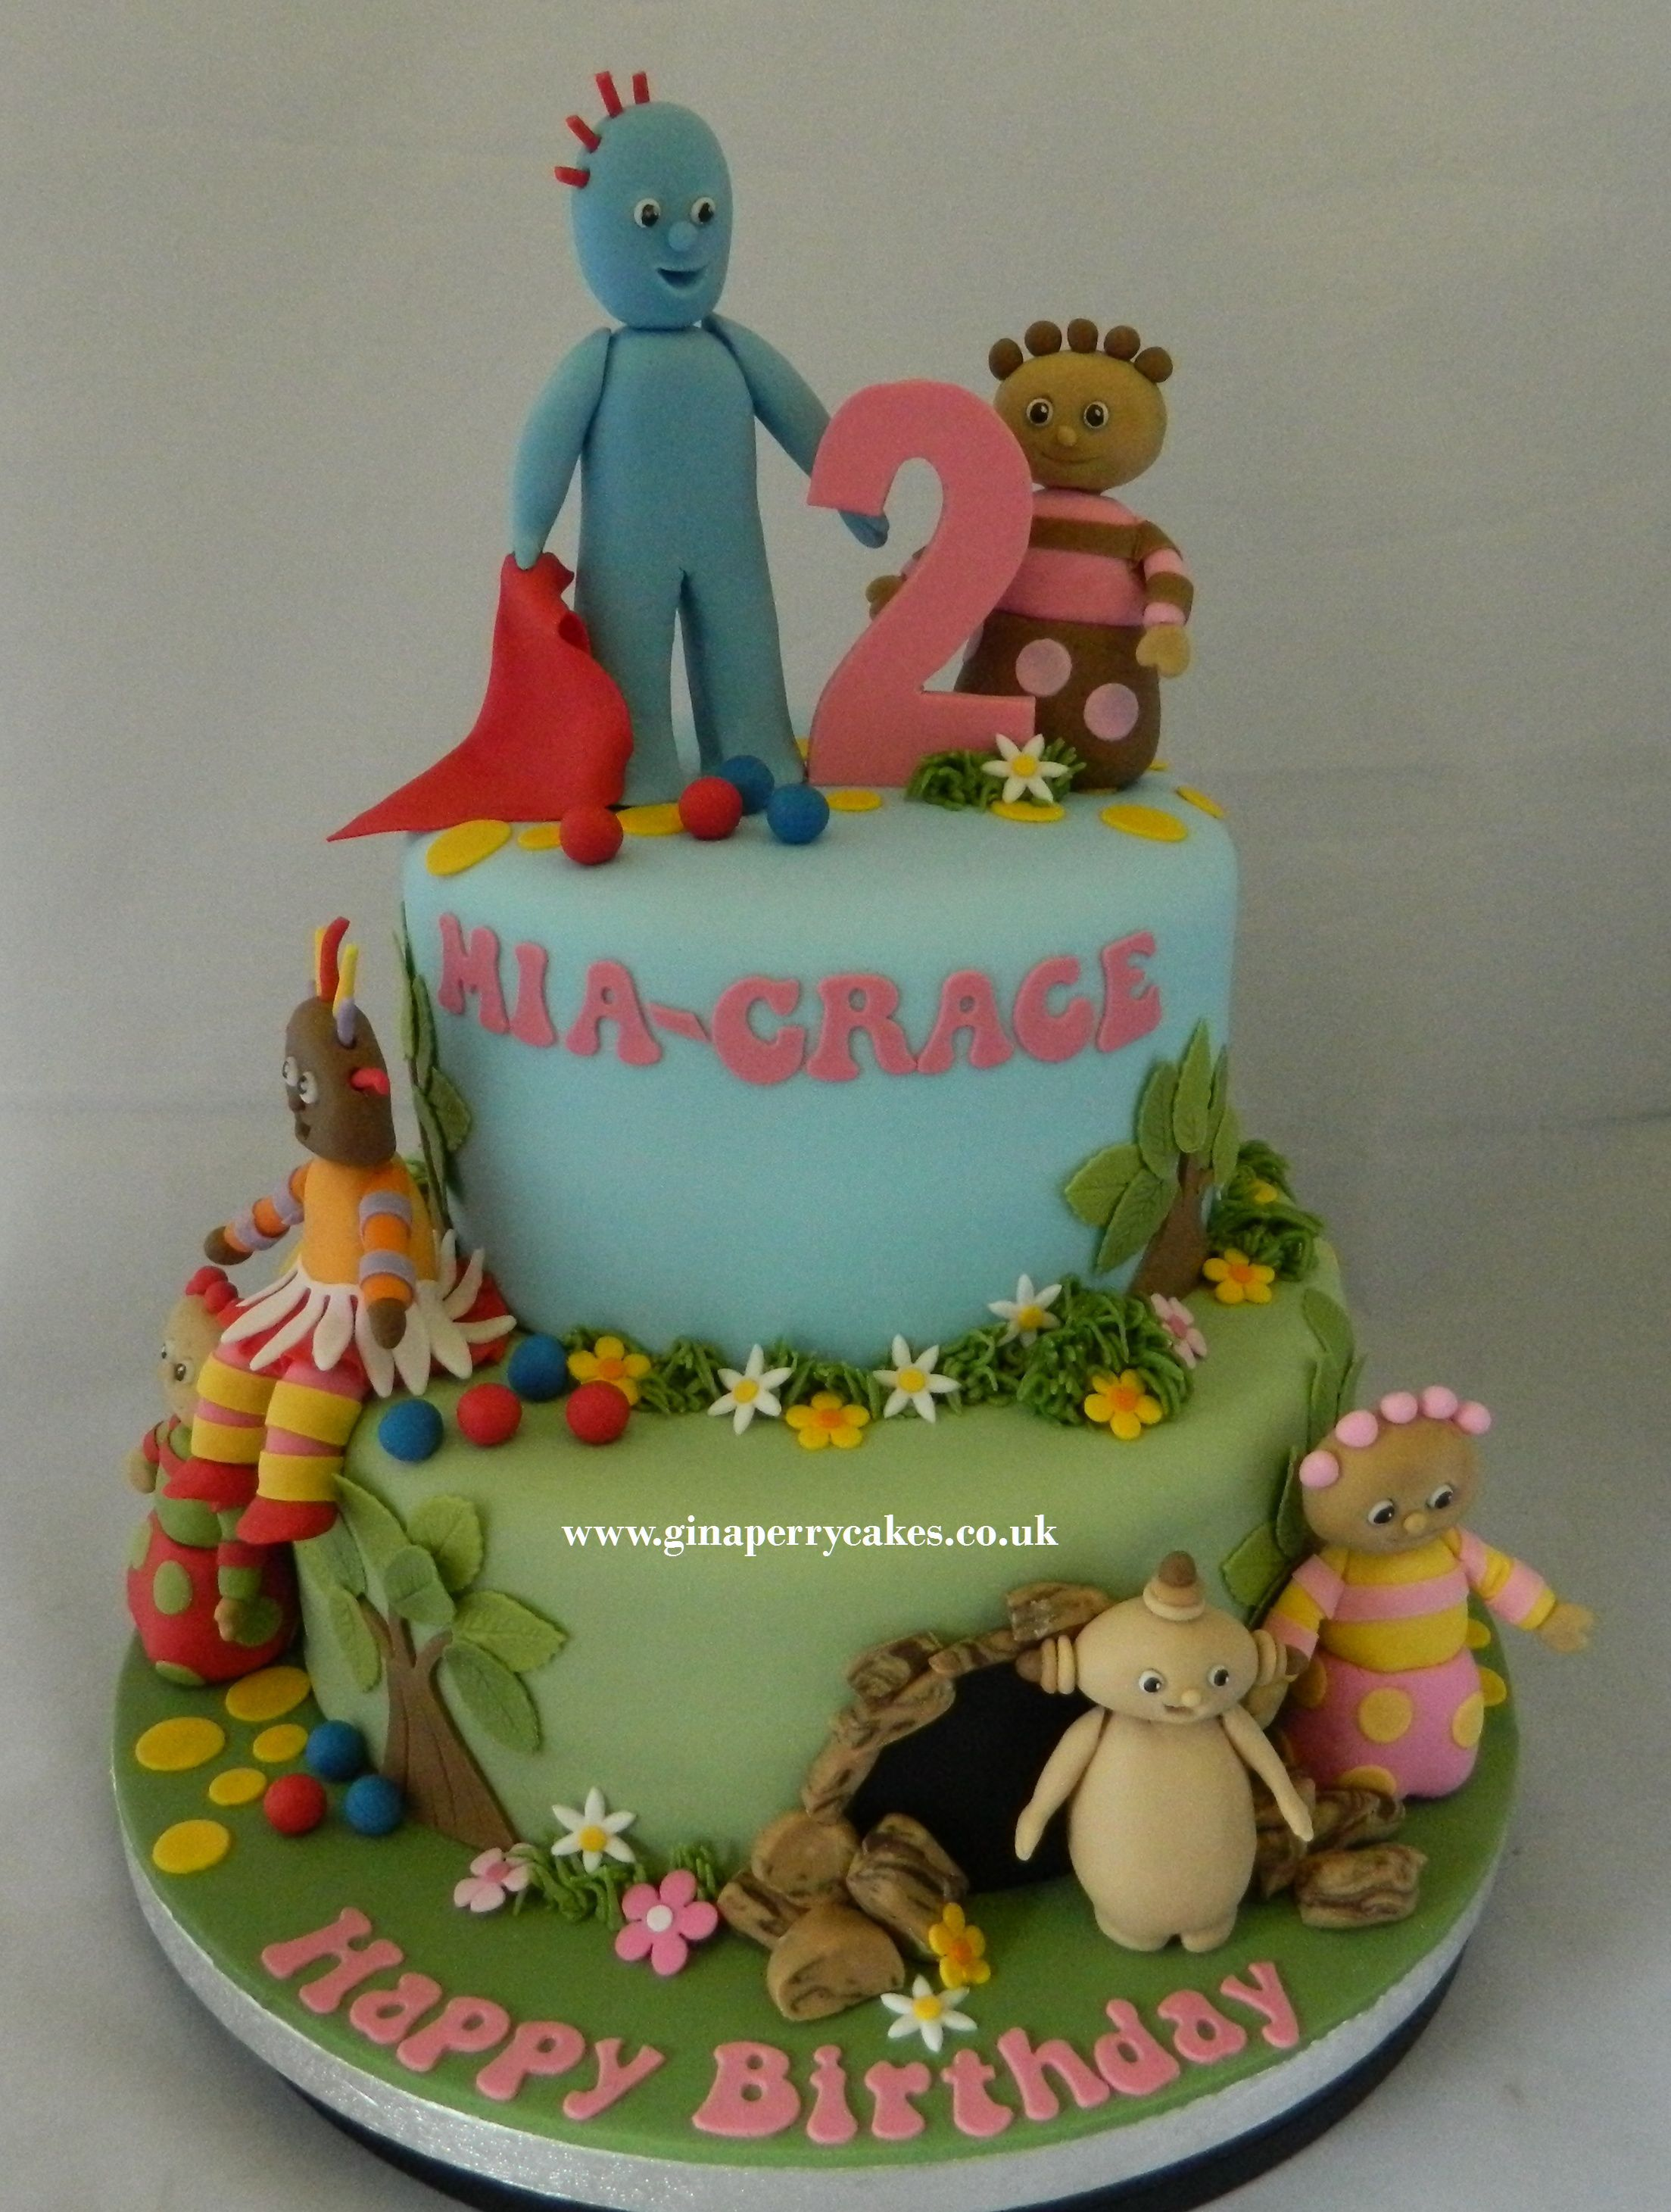 In the Night Garden cake with Iggle Piggle Upsy Daisy and the